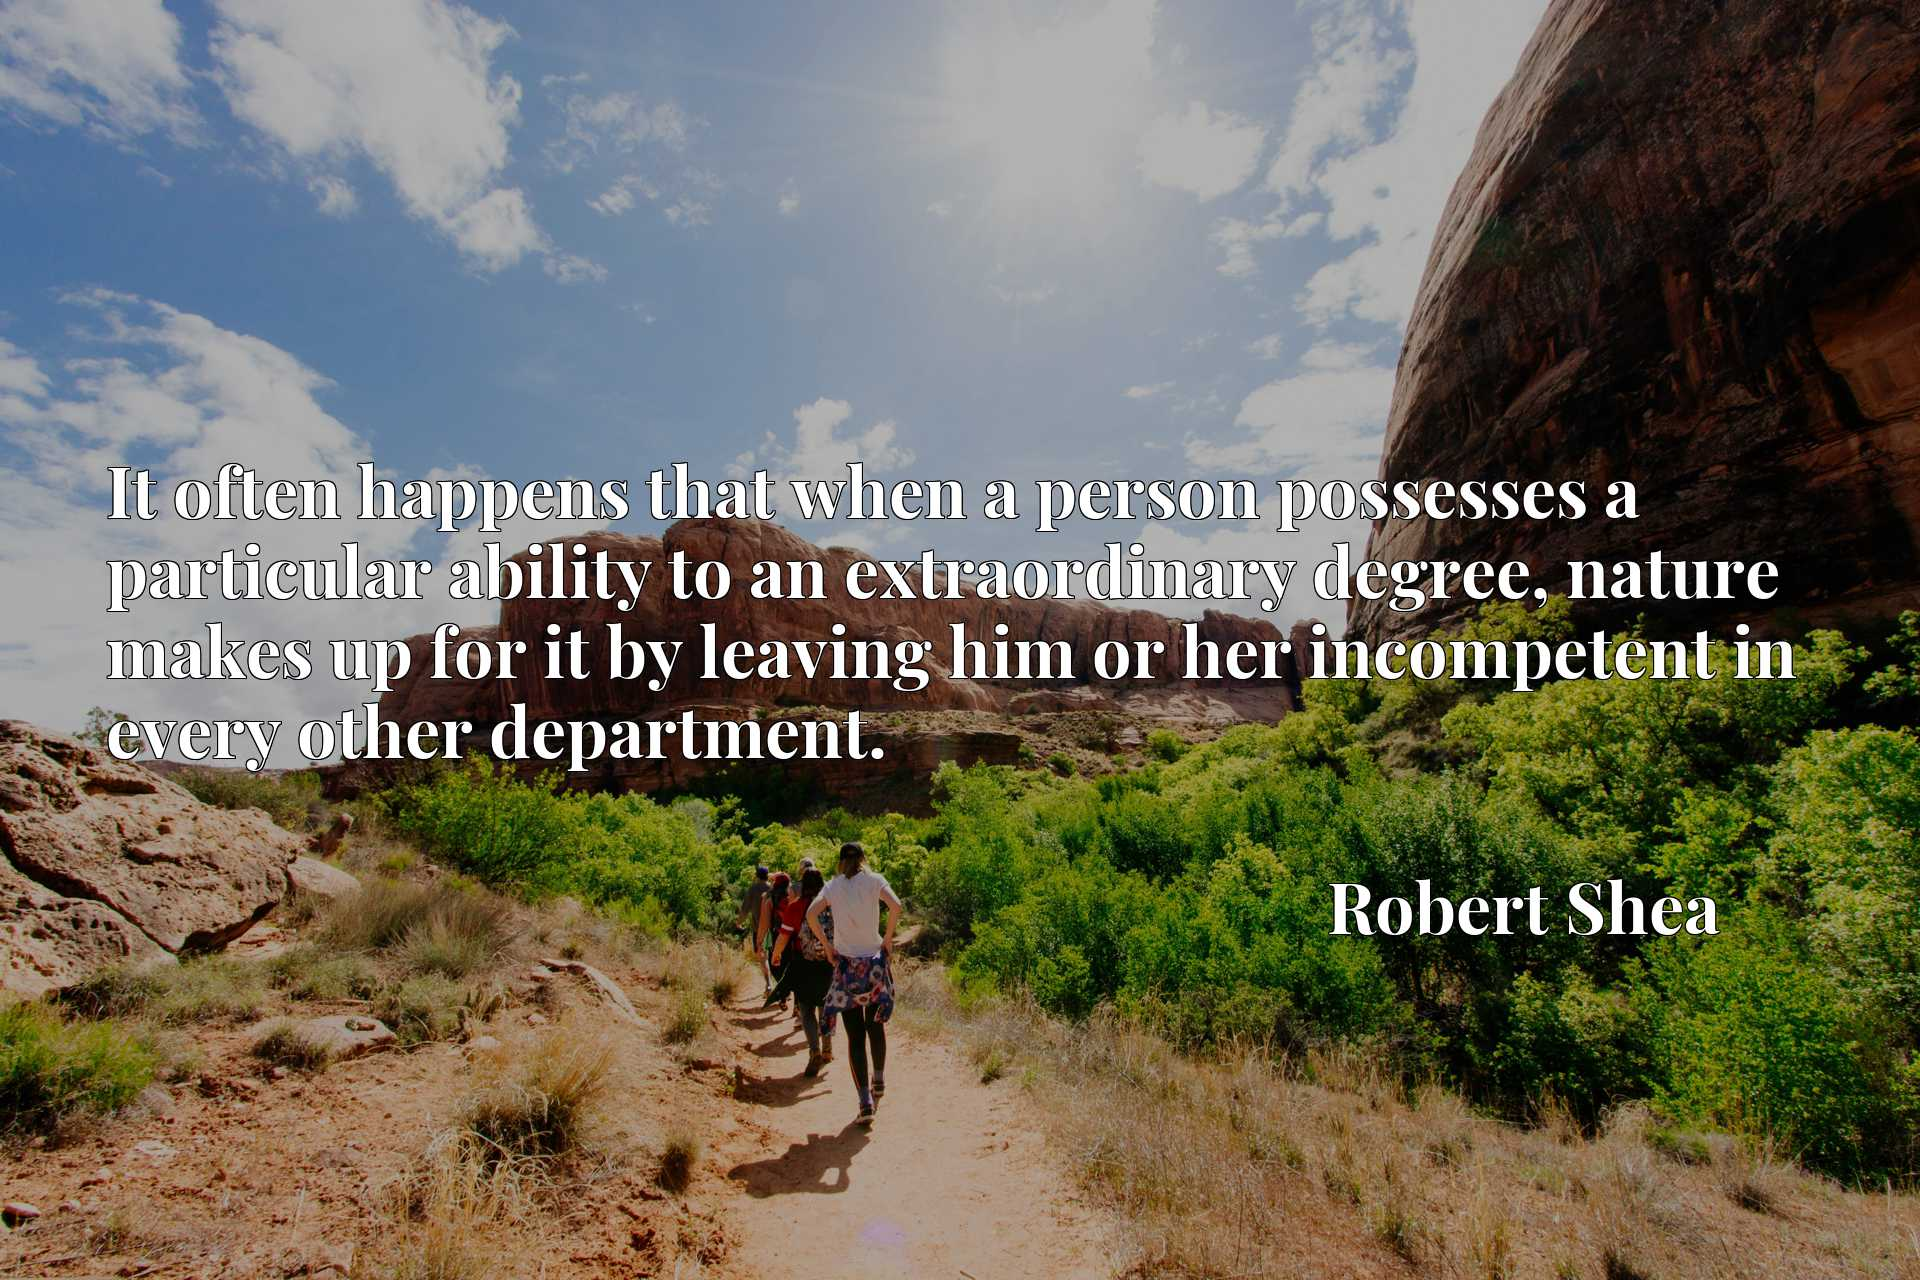 Quote Picture :It often happens that when a person possesses a particular ability to an extraordinary degree, nature makes up for it by leaving him or her incompetent in every other department.